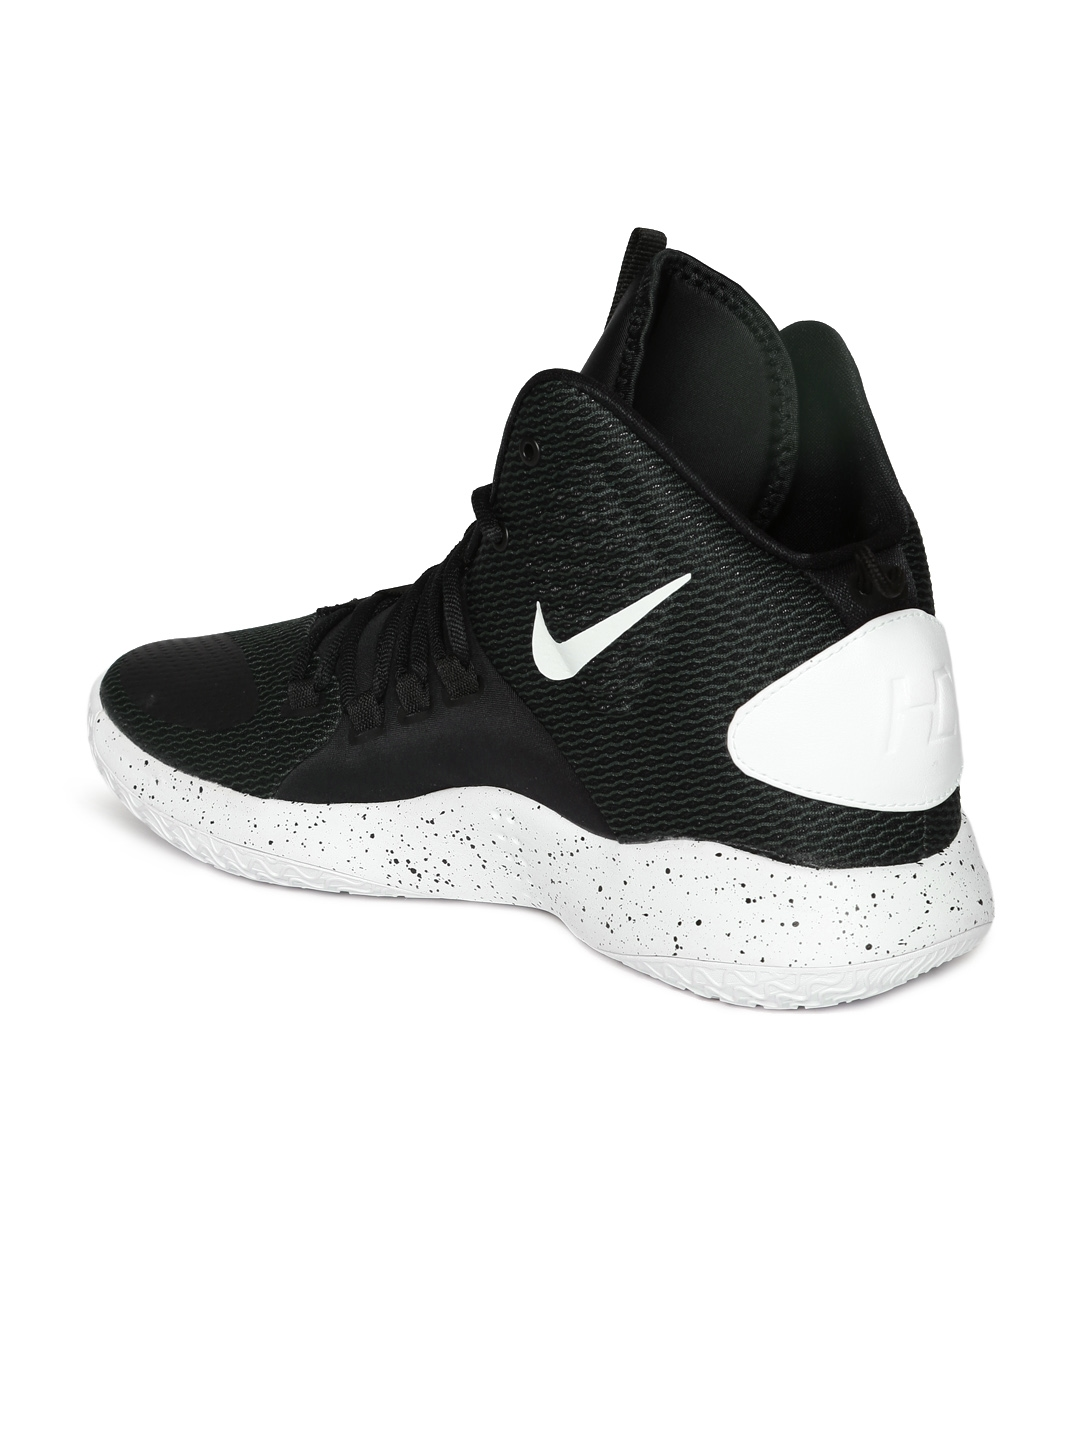 7b26f2dcc07d Buy Nike Men Black Hyperdunk X Mid Top Basketball Shoes - Sports ...